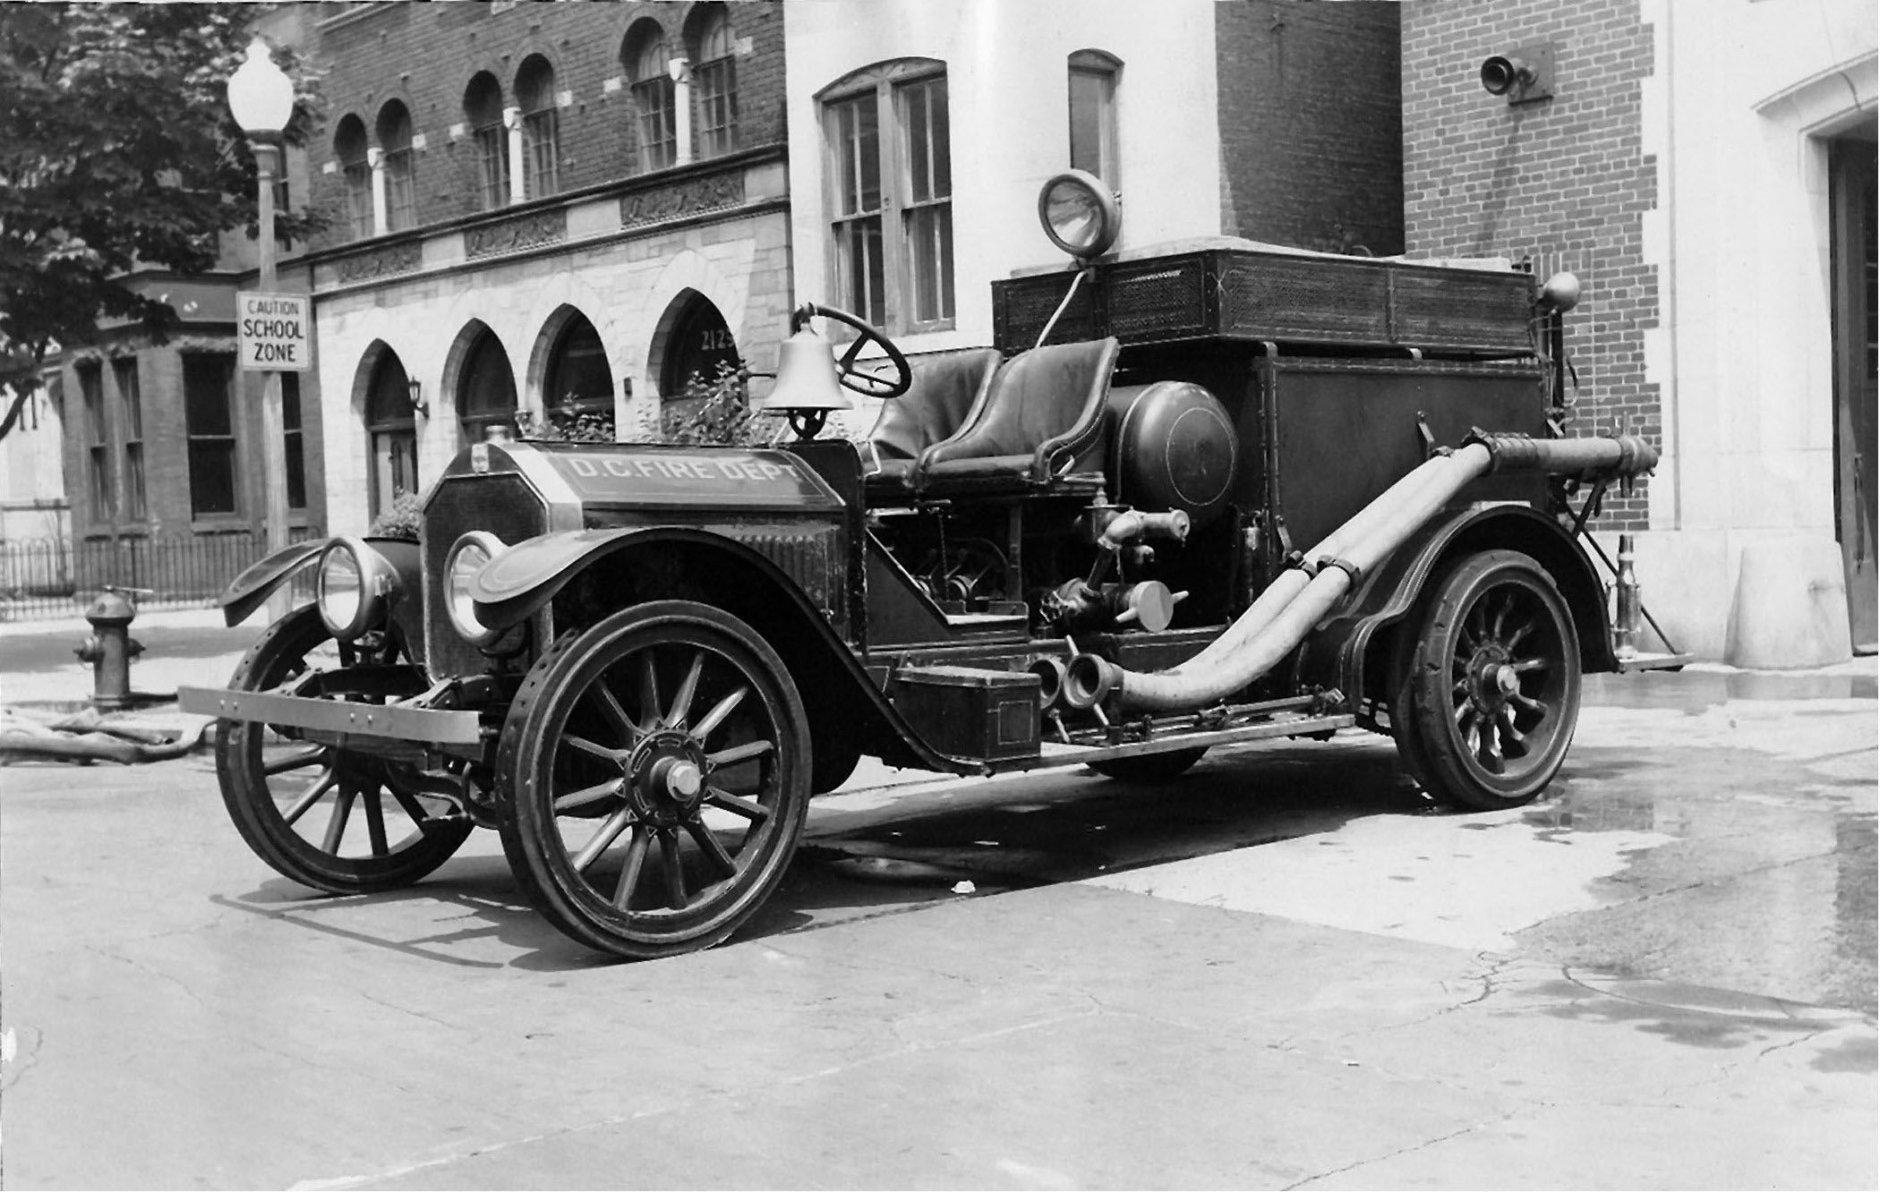 A 1915 fire truck assigned to Engine 23 (Courtesy DC Fire and EMS Museum)